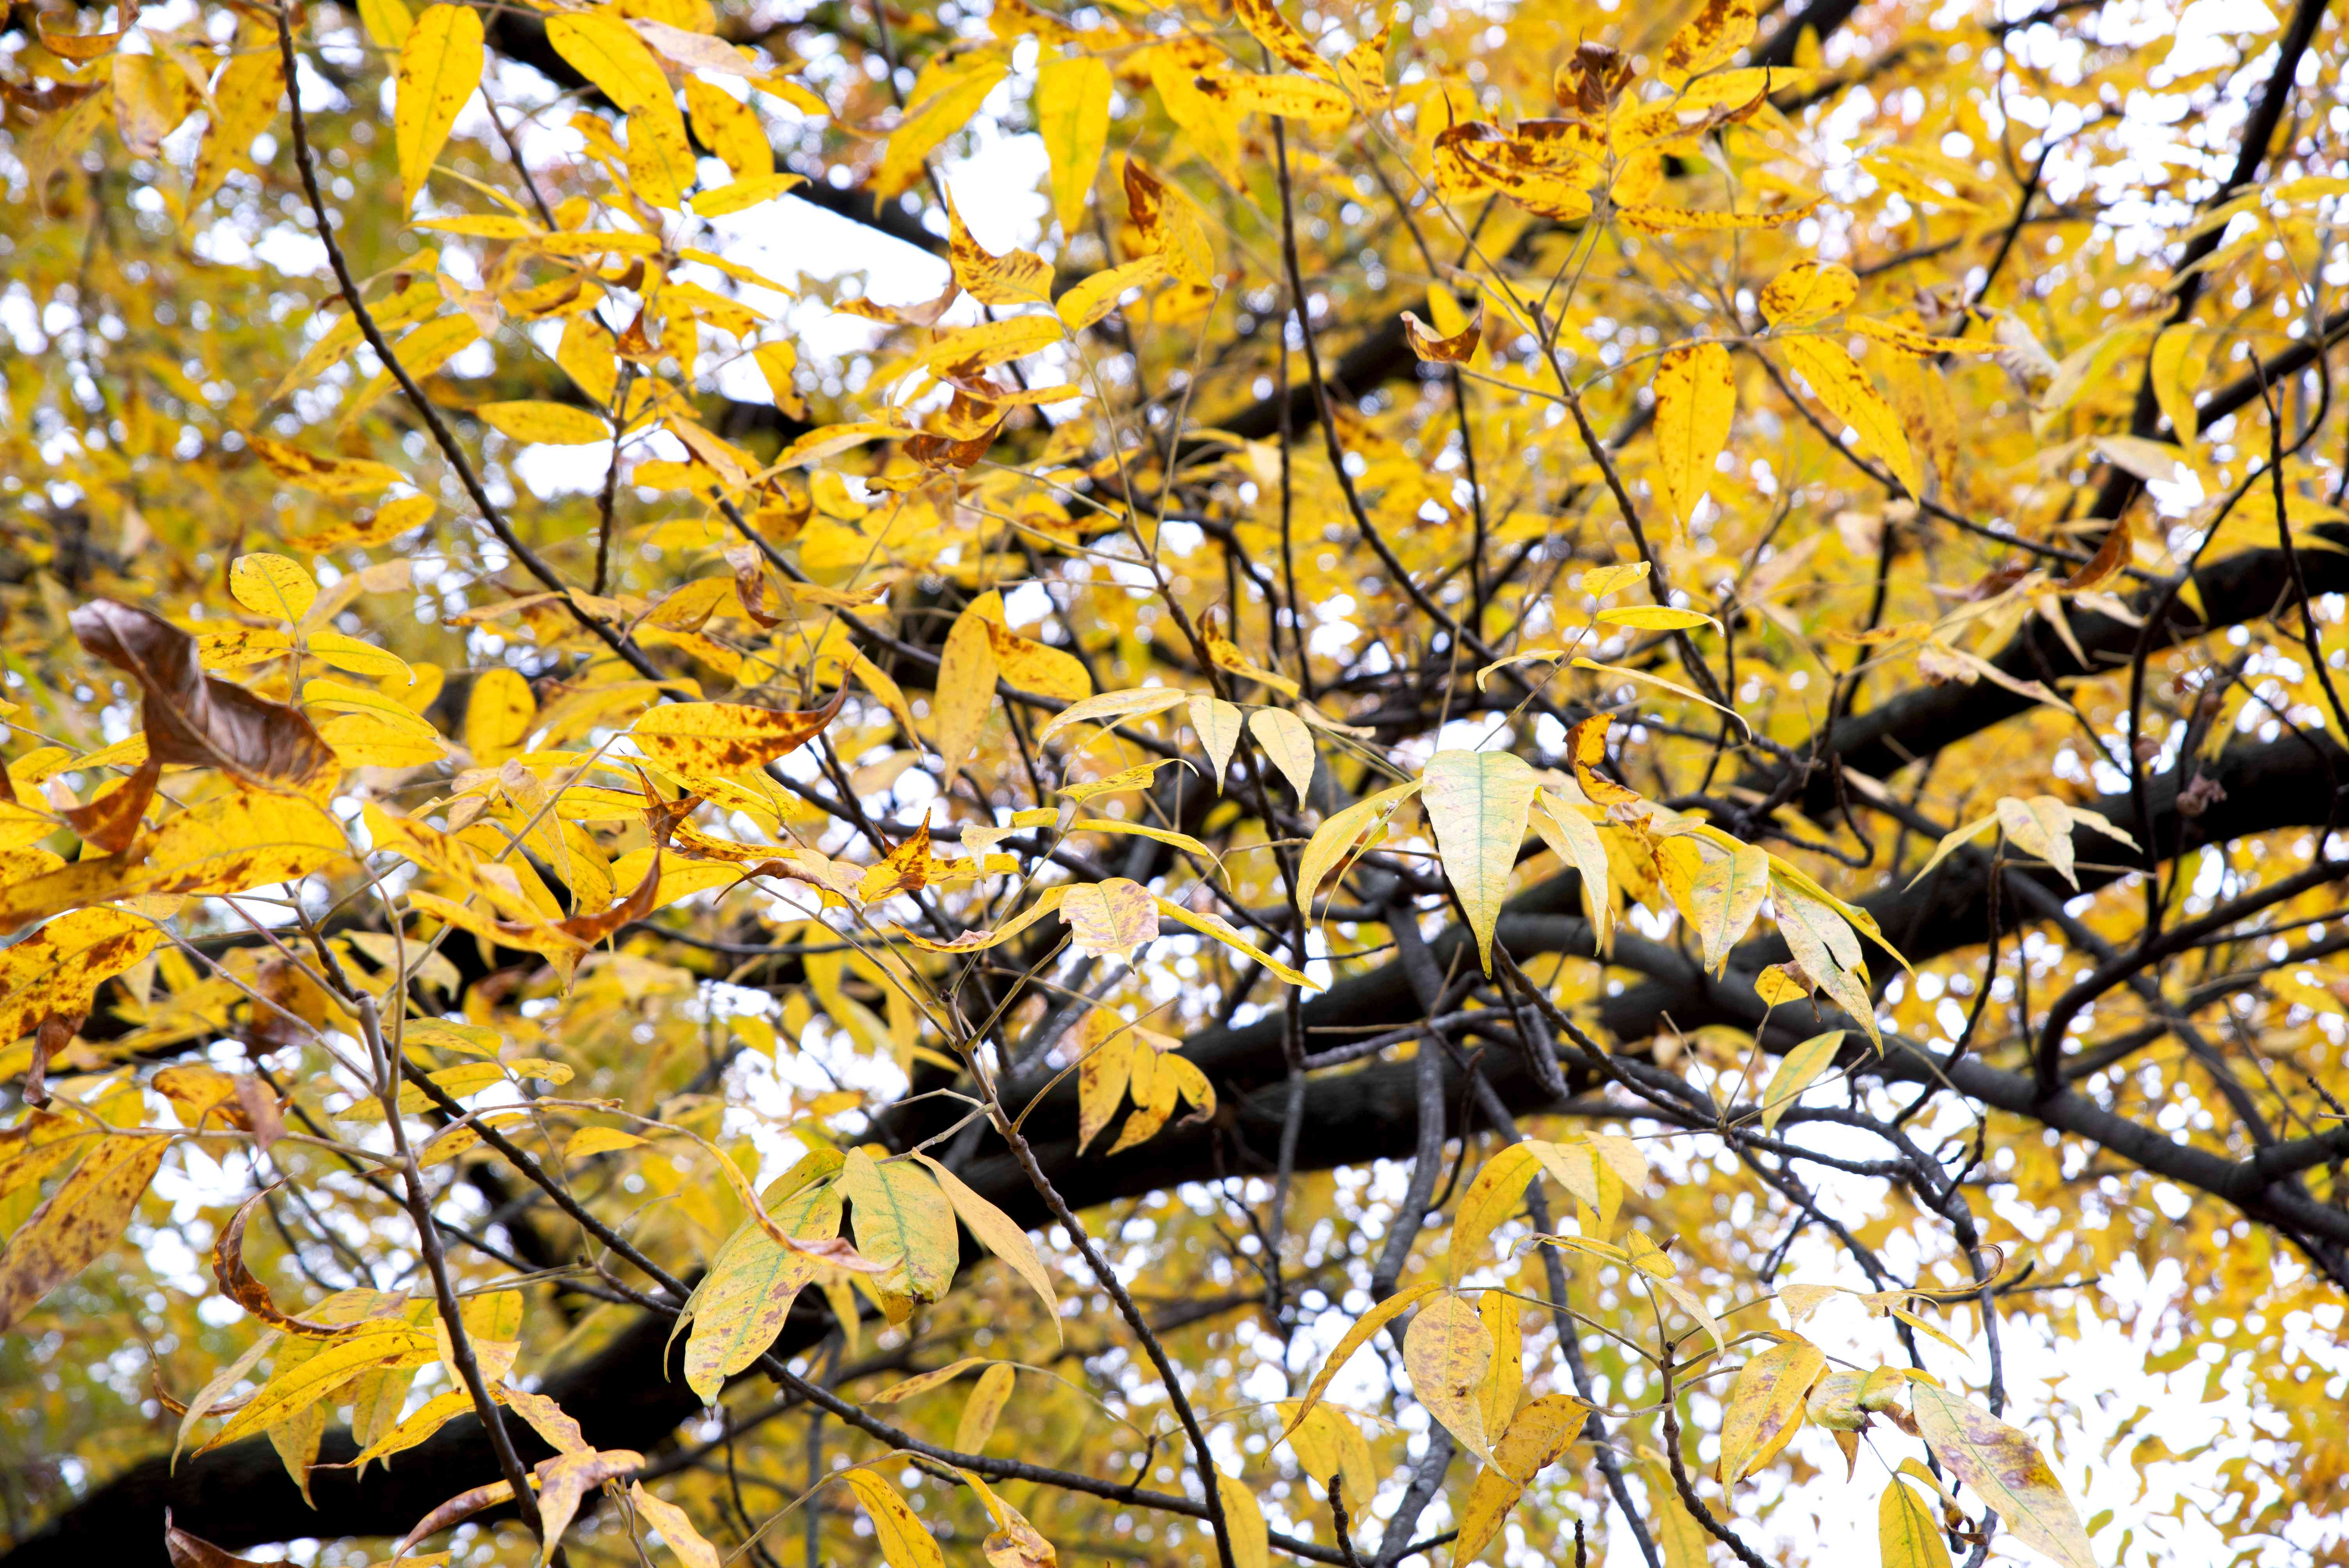 Pumpkin ash tree with dark wood branches and yellow-orange leaflets